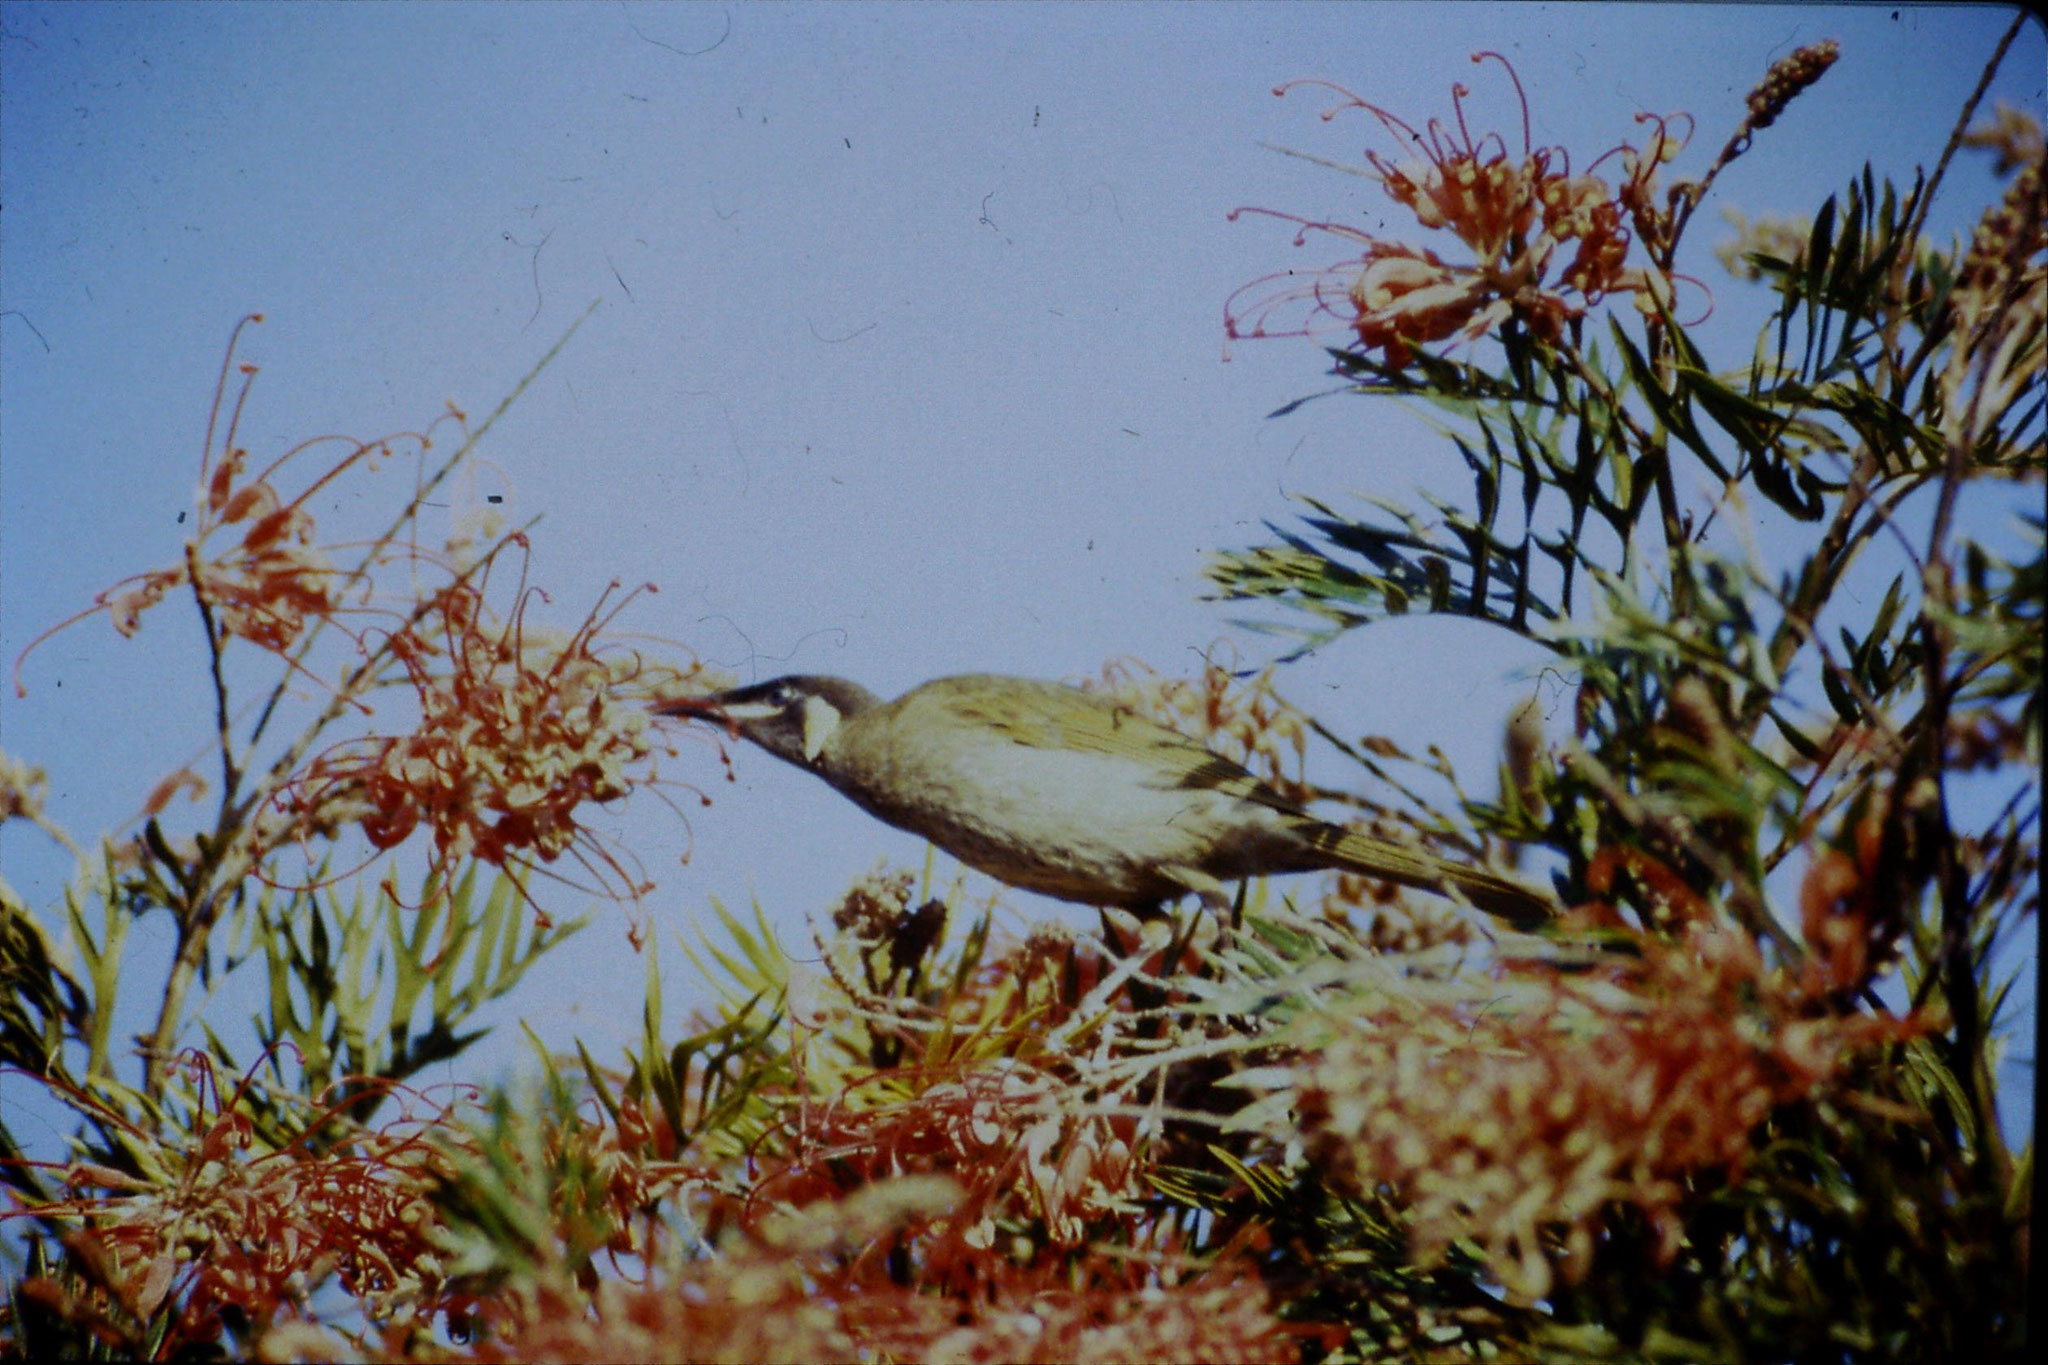 13/10/1990: 17: Mt Lamington, Lewin's honey eater